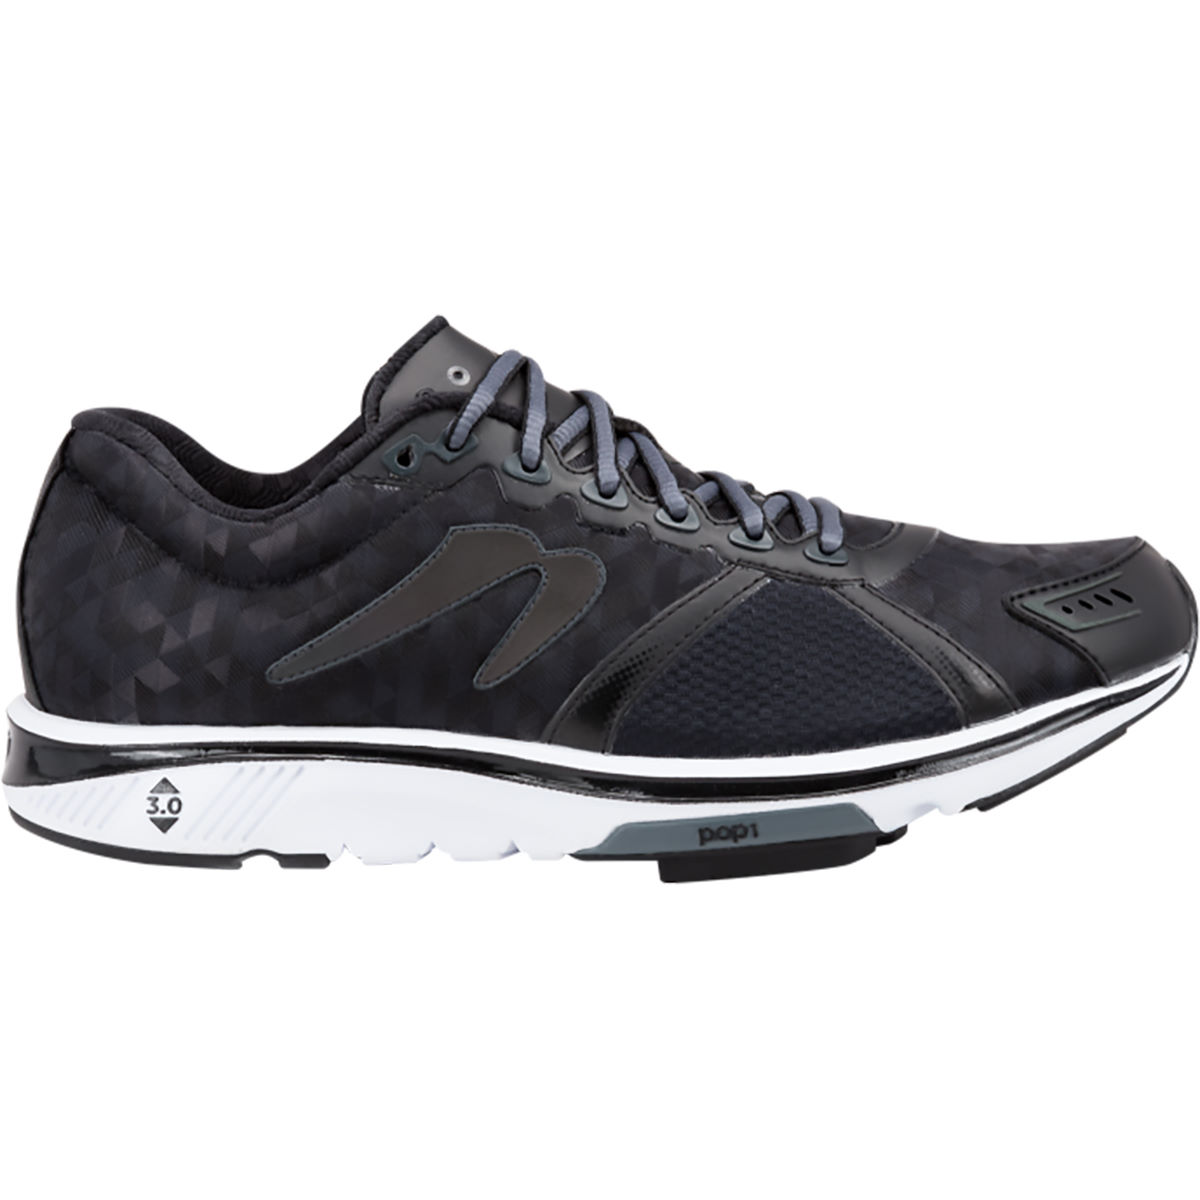 Newton Running Shoes Gravity V Black Shoes (AW16)   Cushion Running Shoes